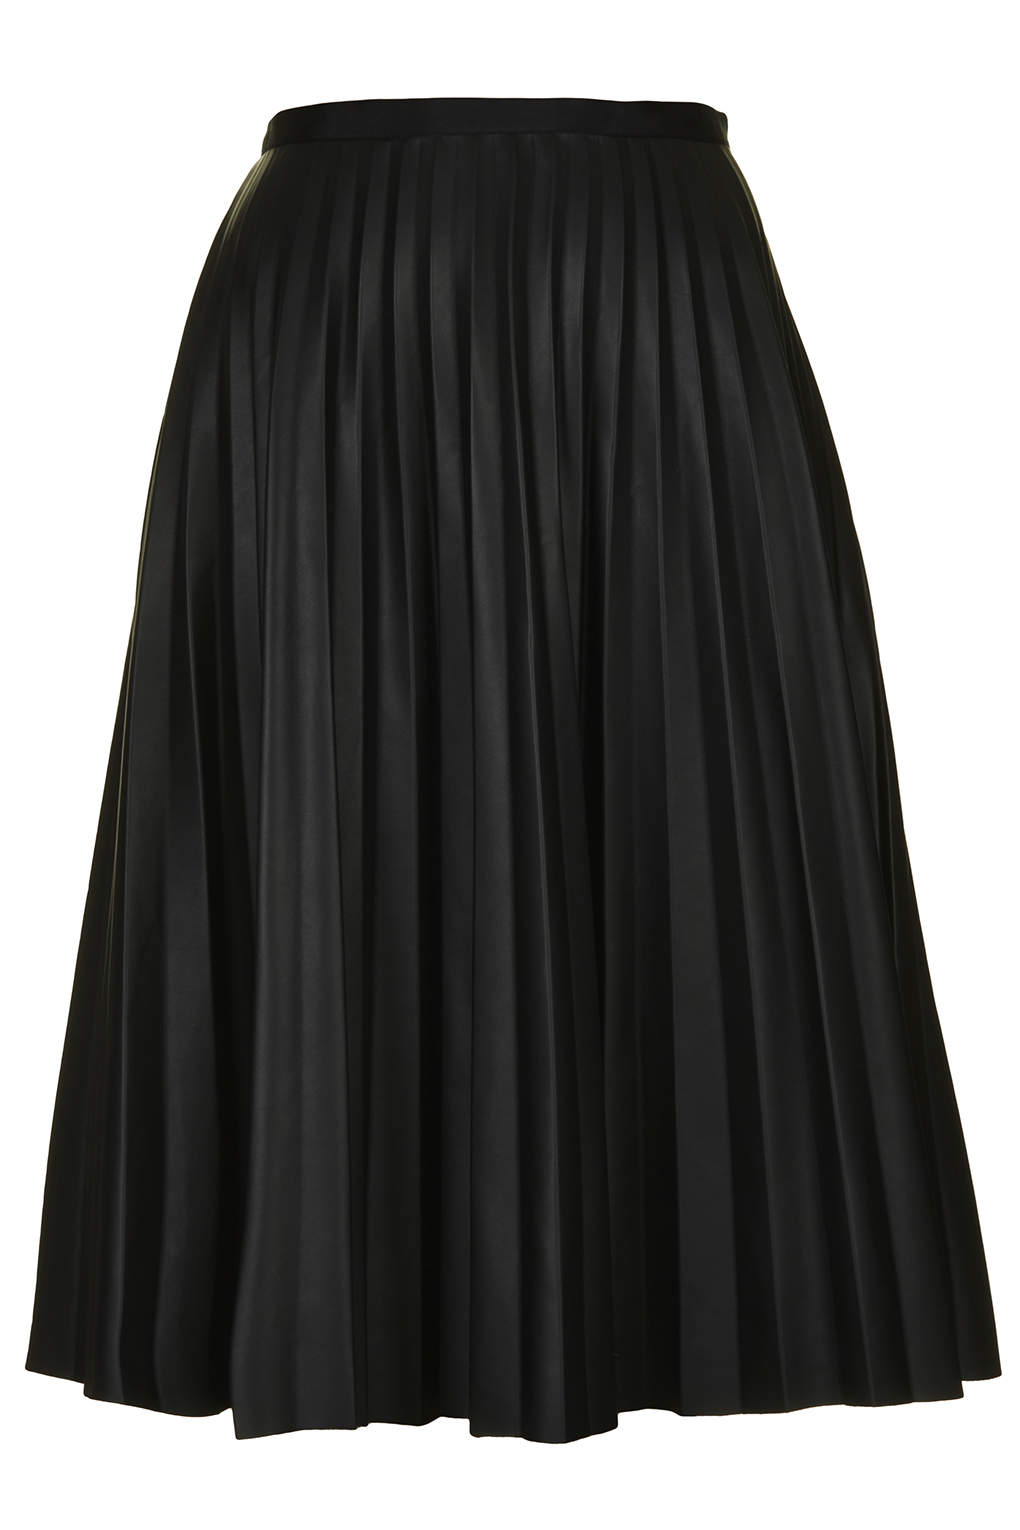 Find Pleated, black, Midi from the Womens department at Debenhams. Shop a wide range of Skirts products and more at our online shop today.